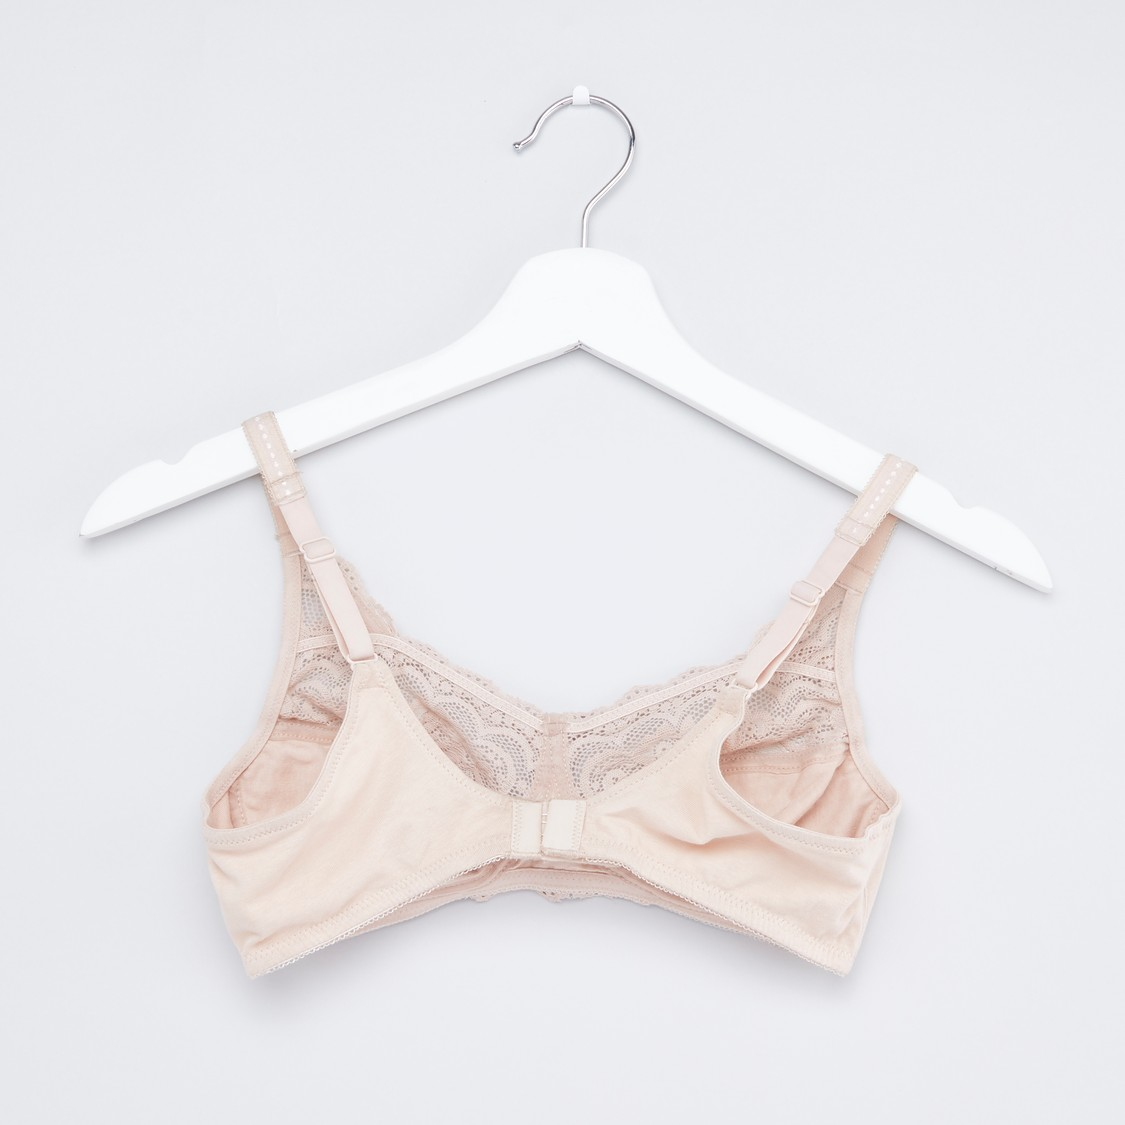 Lace Detail Non-Wired Bra with Hook and Eye Closure